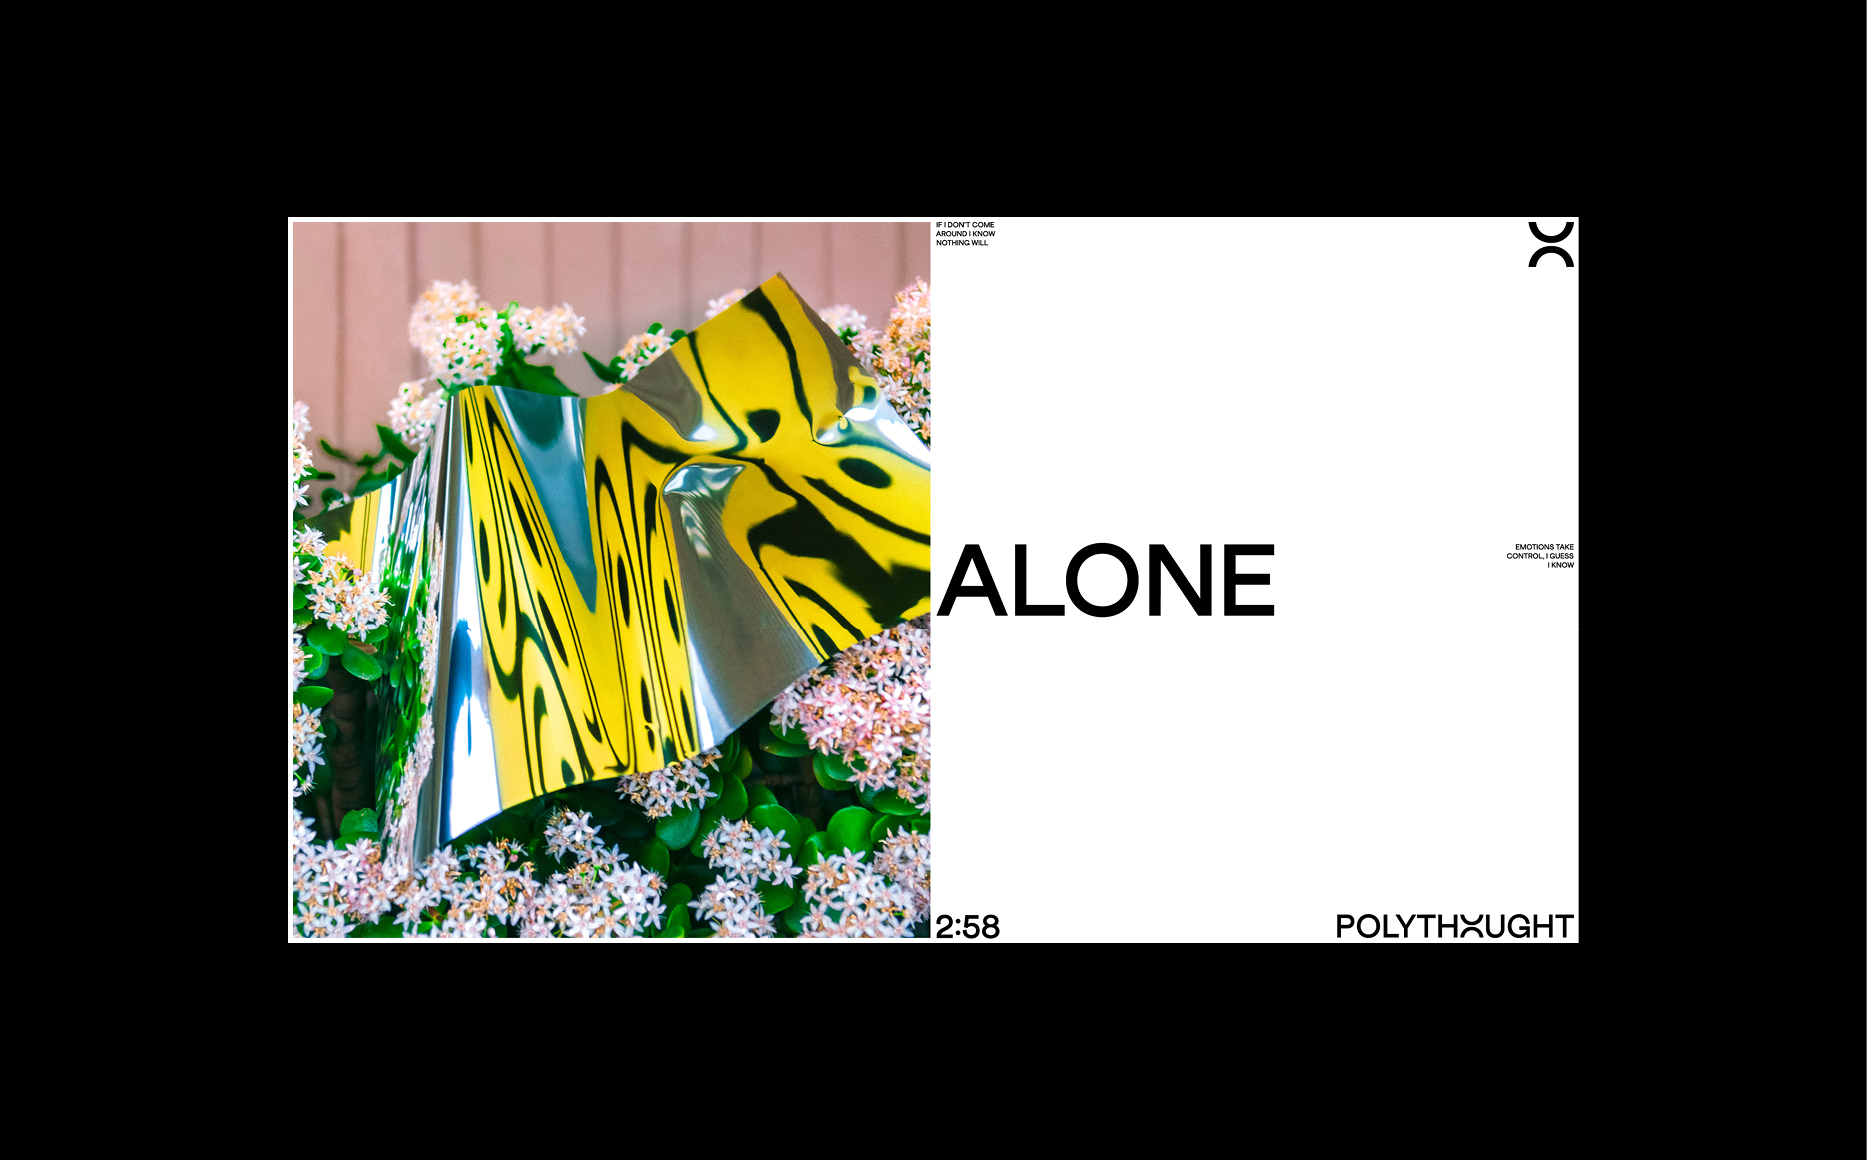 RyanVincent_Web_ALONE_FB COVER